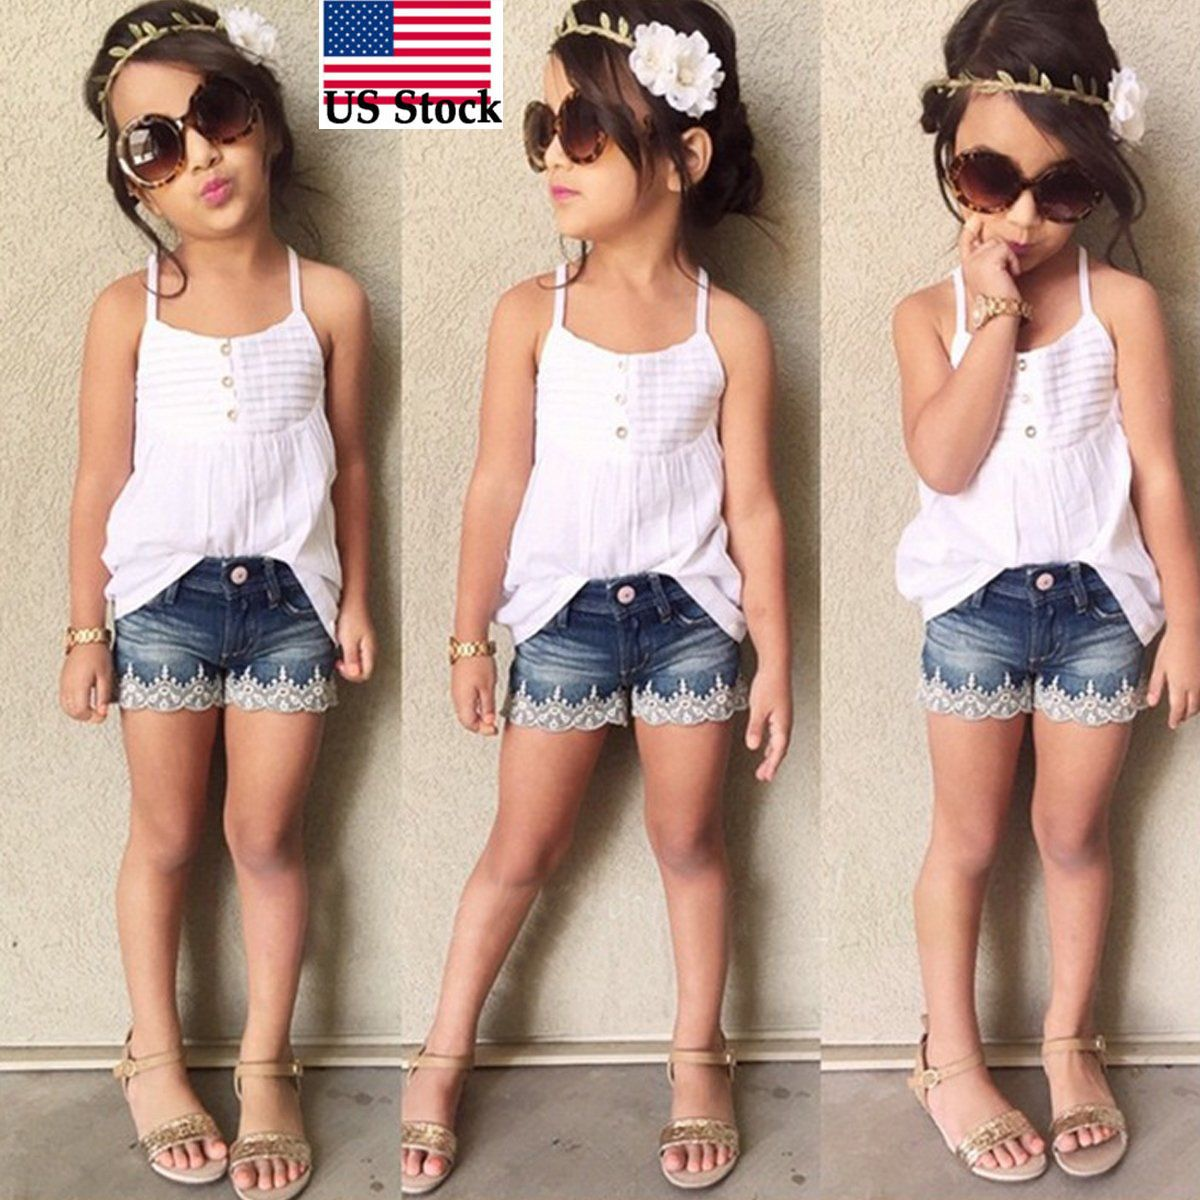 Shorts Pants Outfits Clothes Set 2-7Y 2PCS Kids Baby Girls Toddler T-shirt Tops